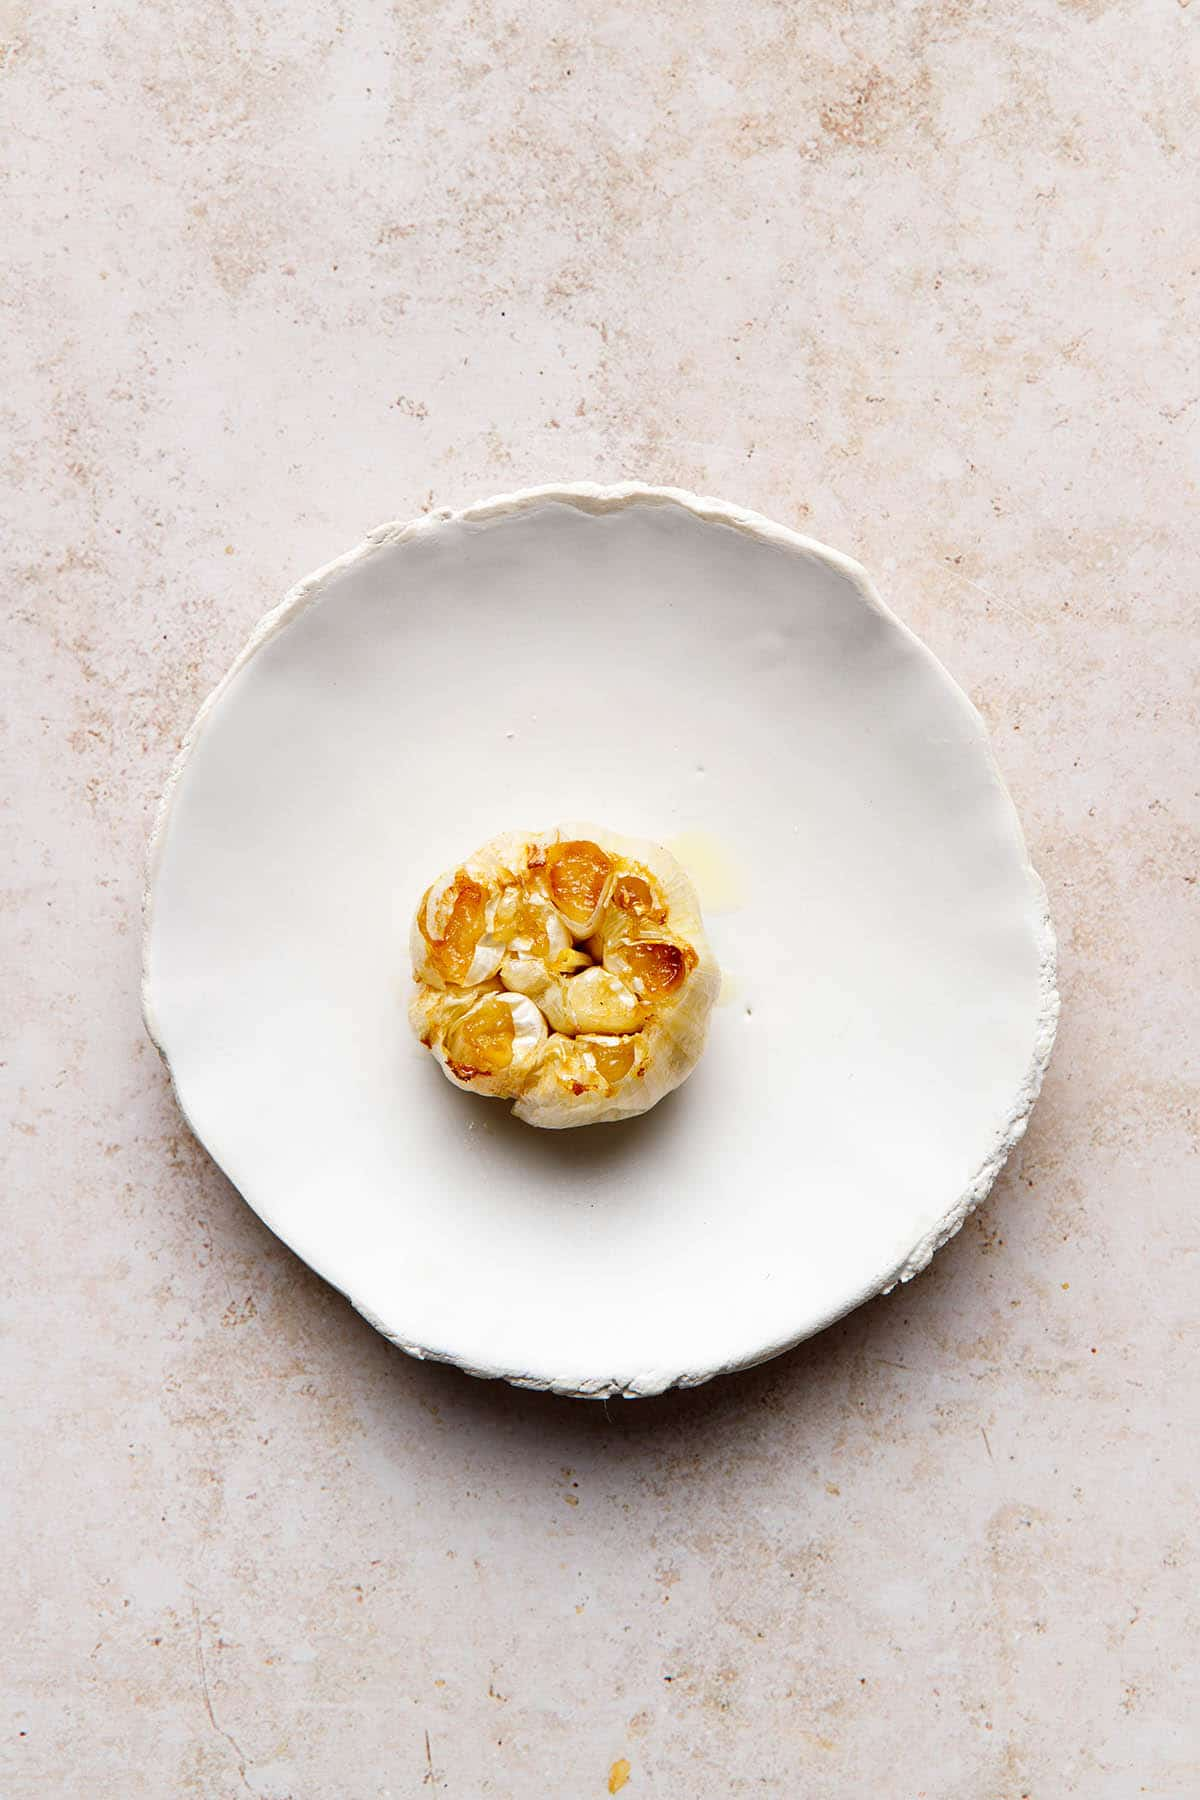 A bulb of air fryer roasted garlic on a white porcelain plate.